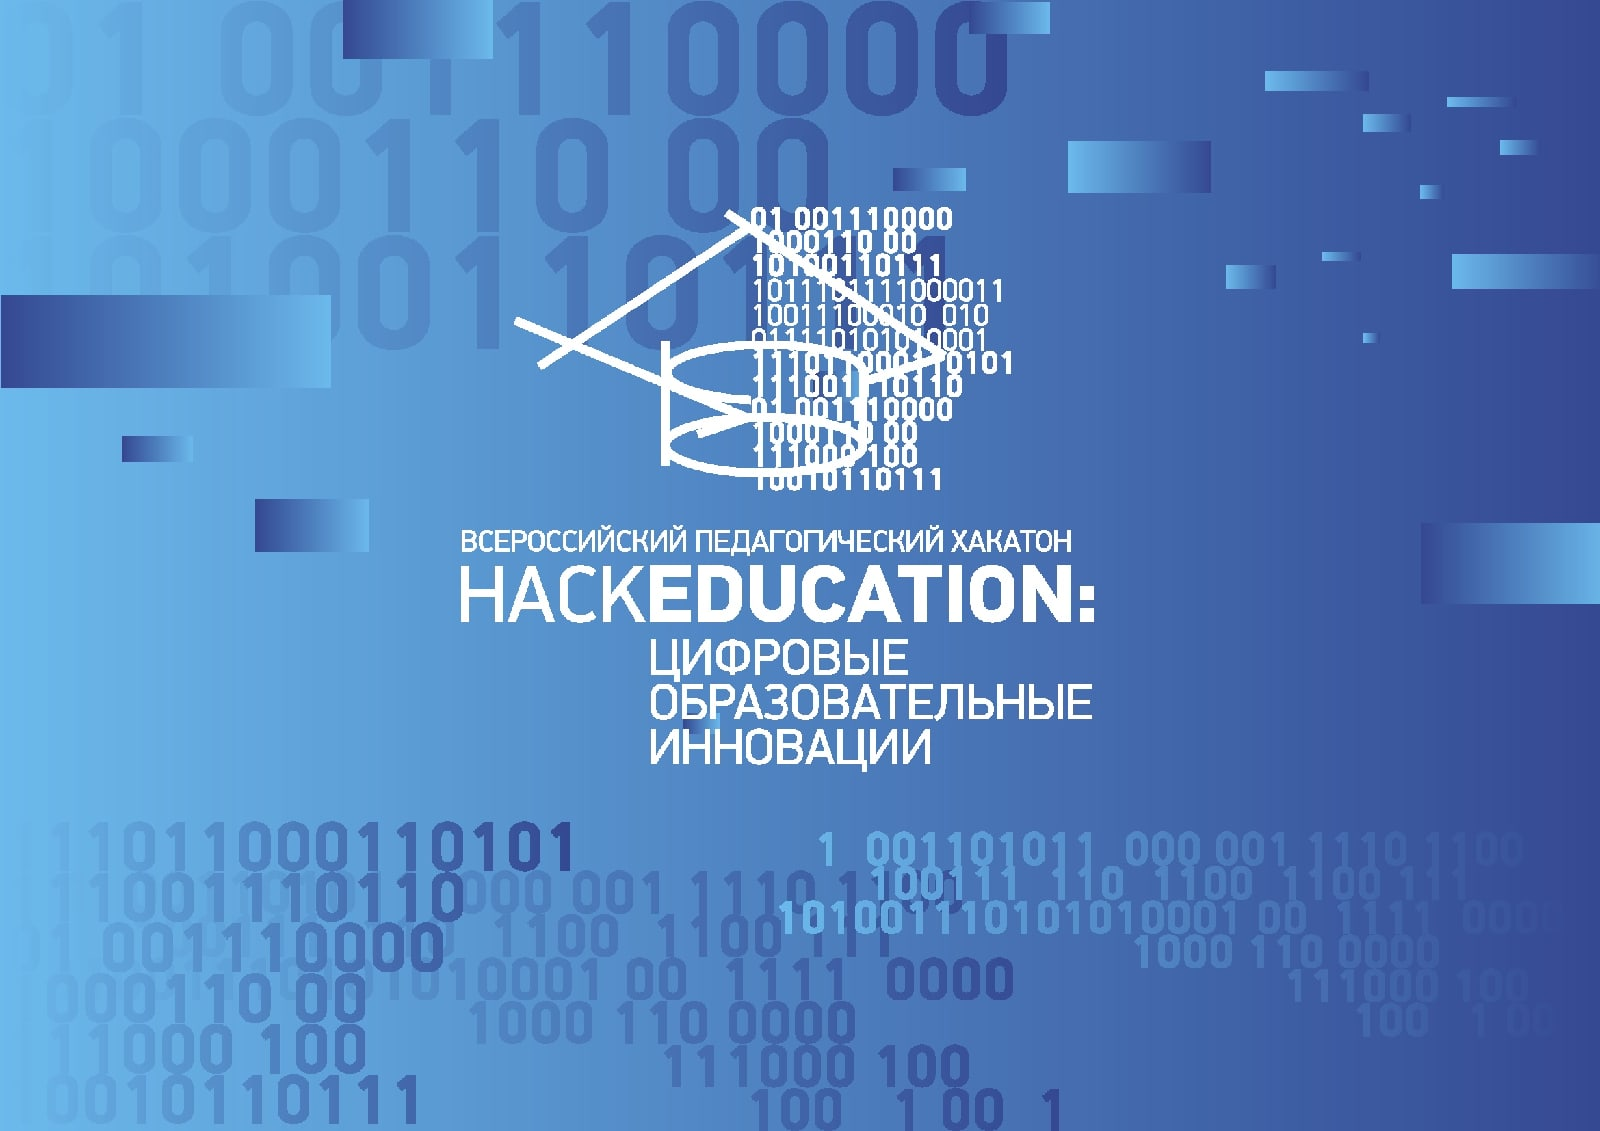 2021 01 29 hackeducation